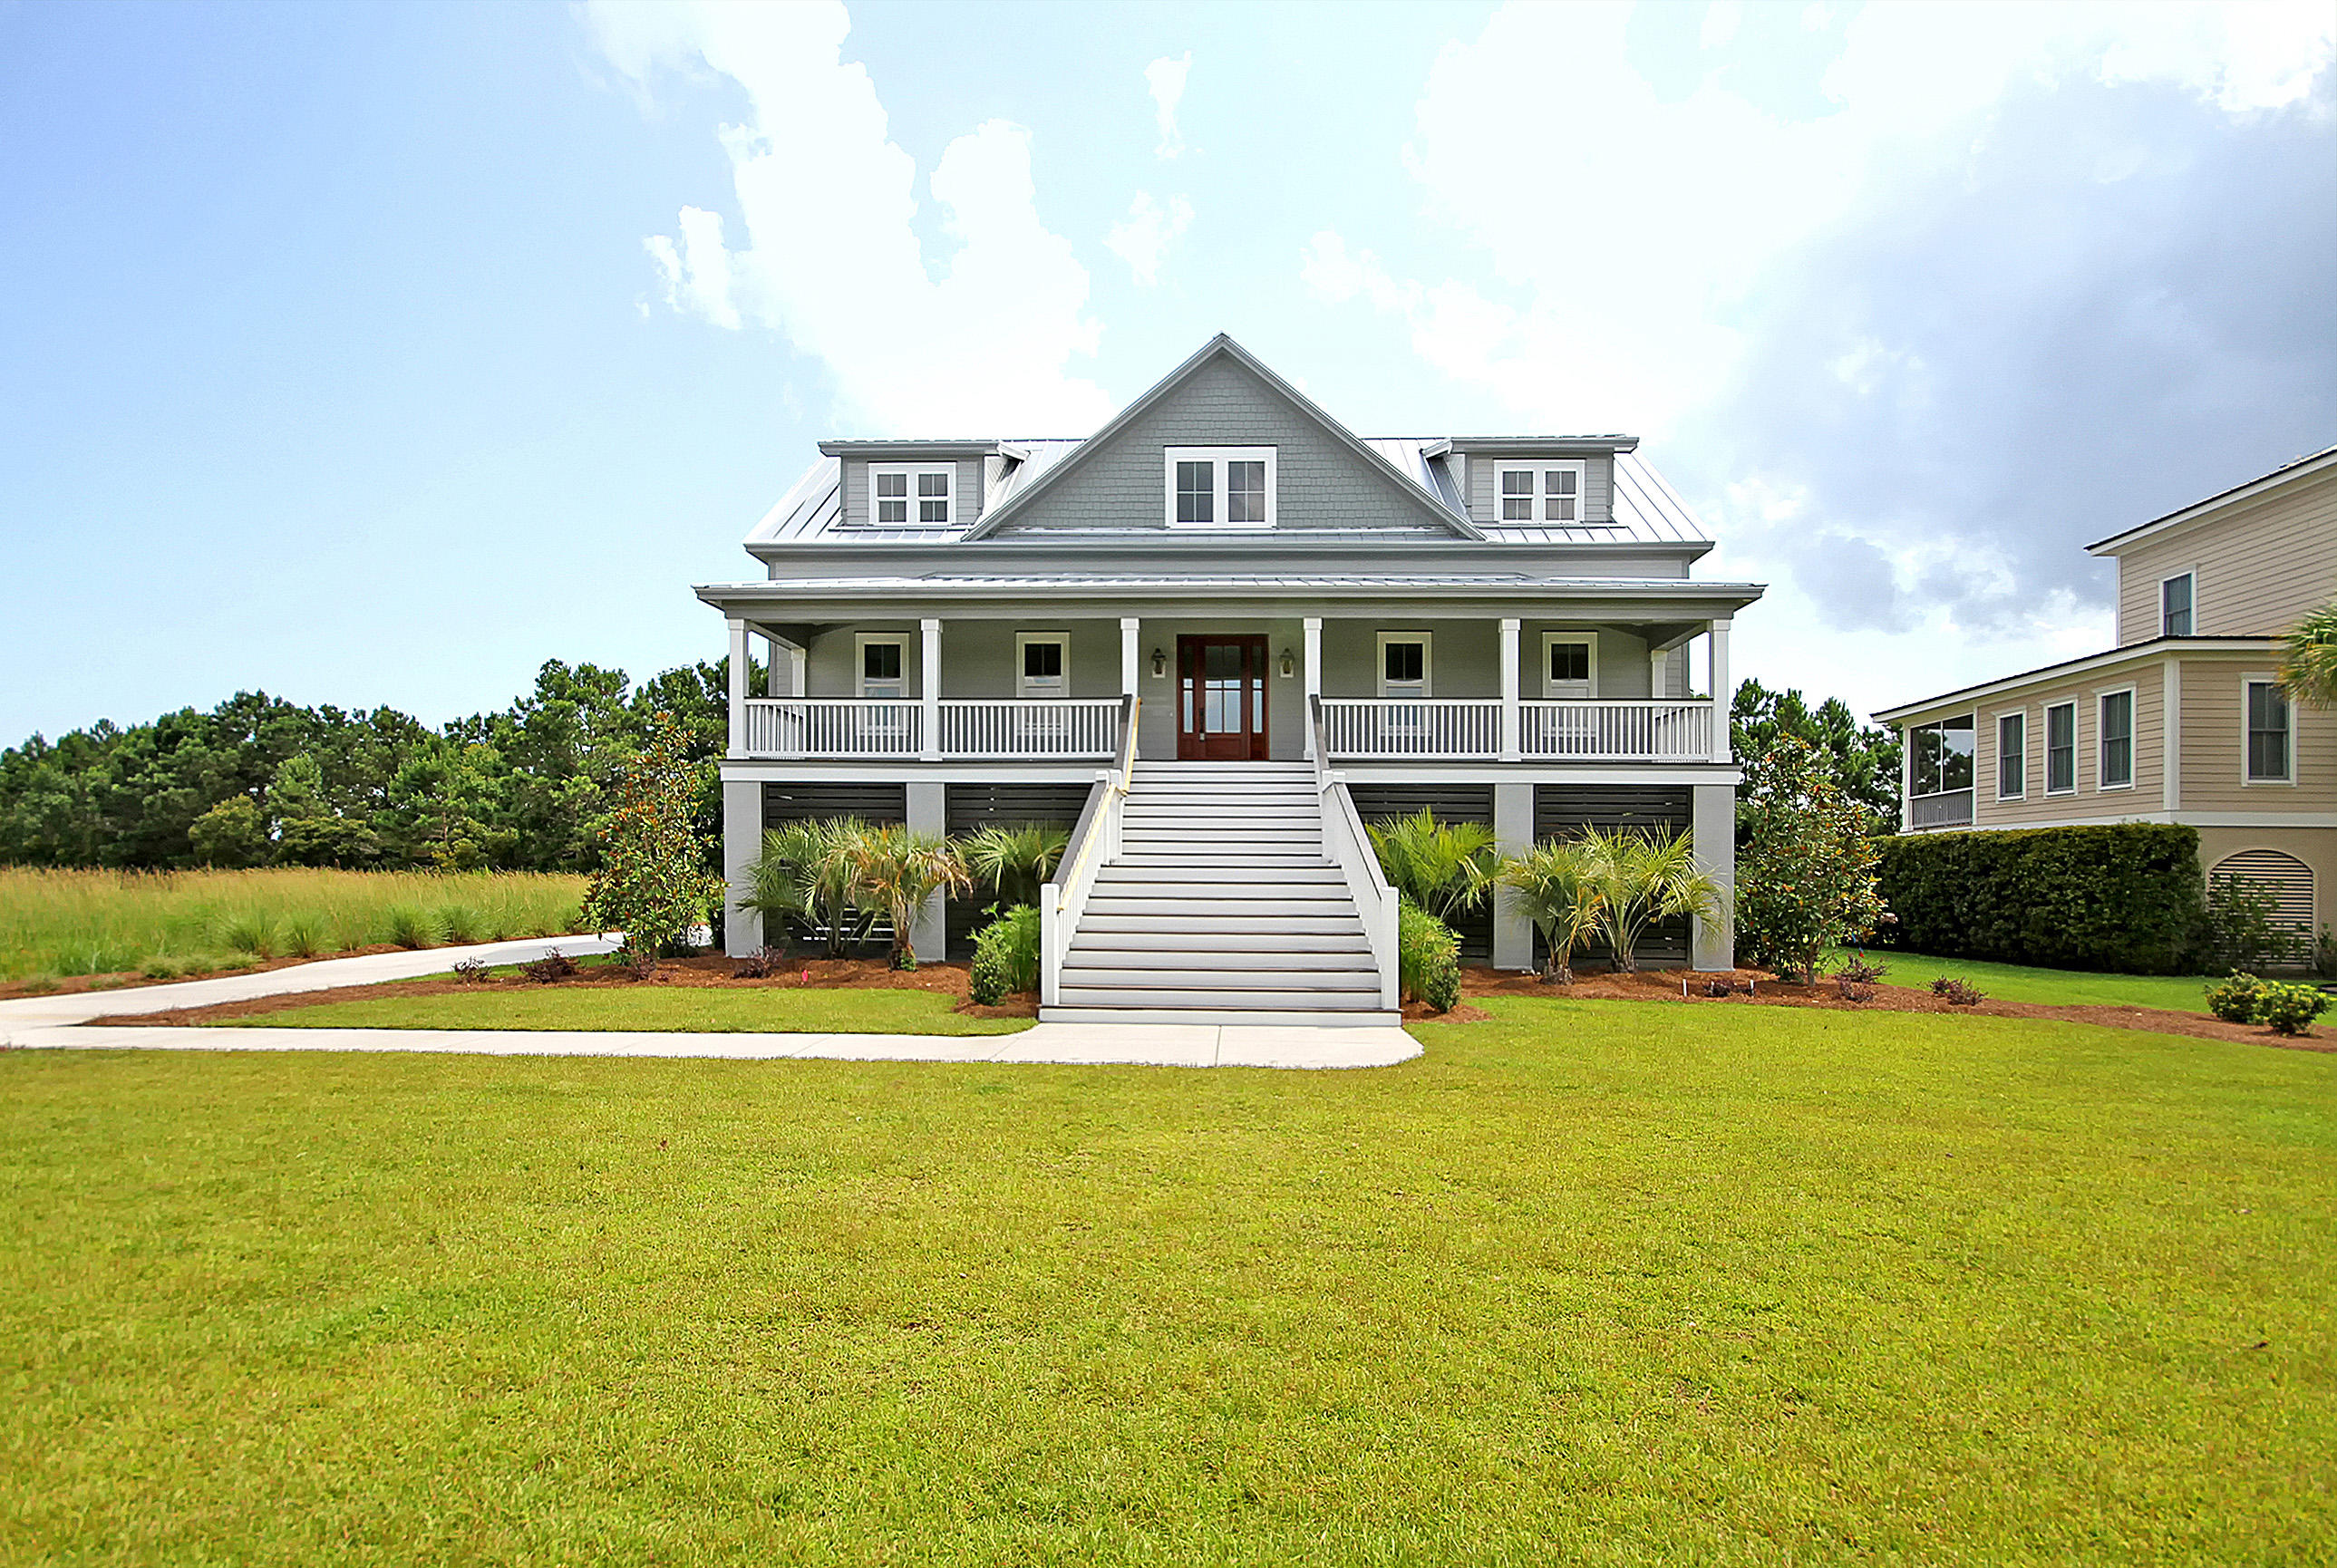 Photo of 2415 Rushland Landing Rd, Johns Island, SC 29455